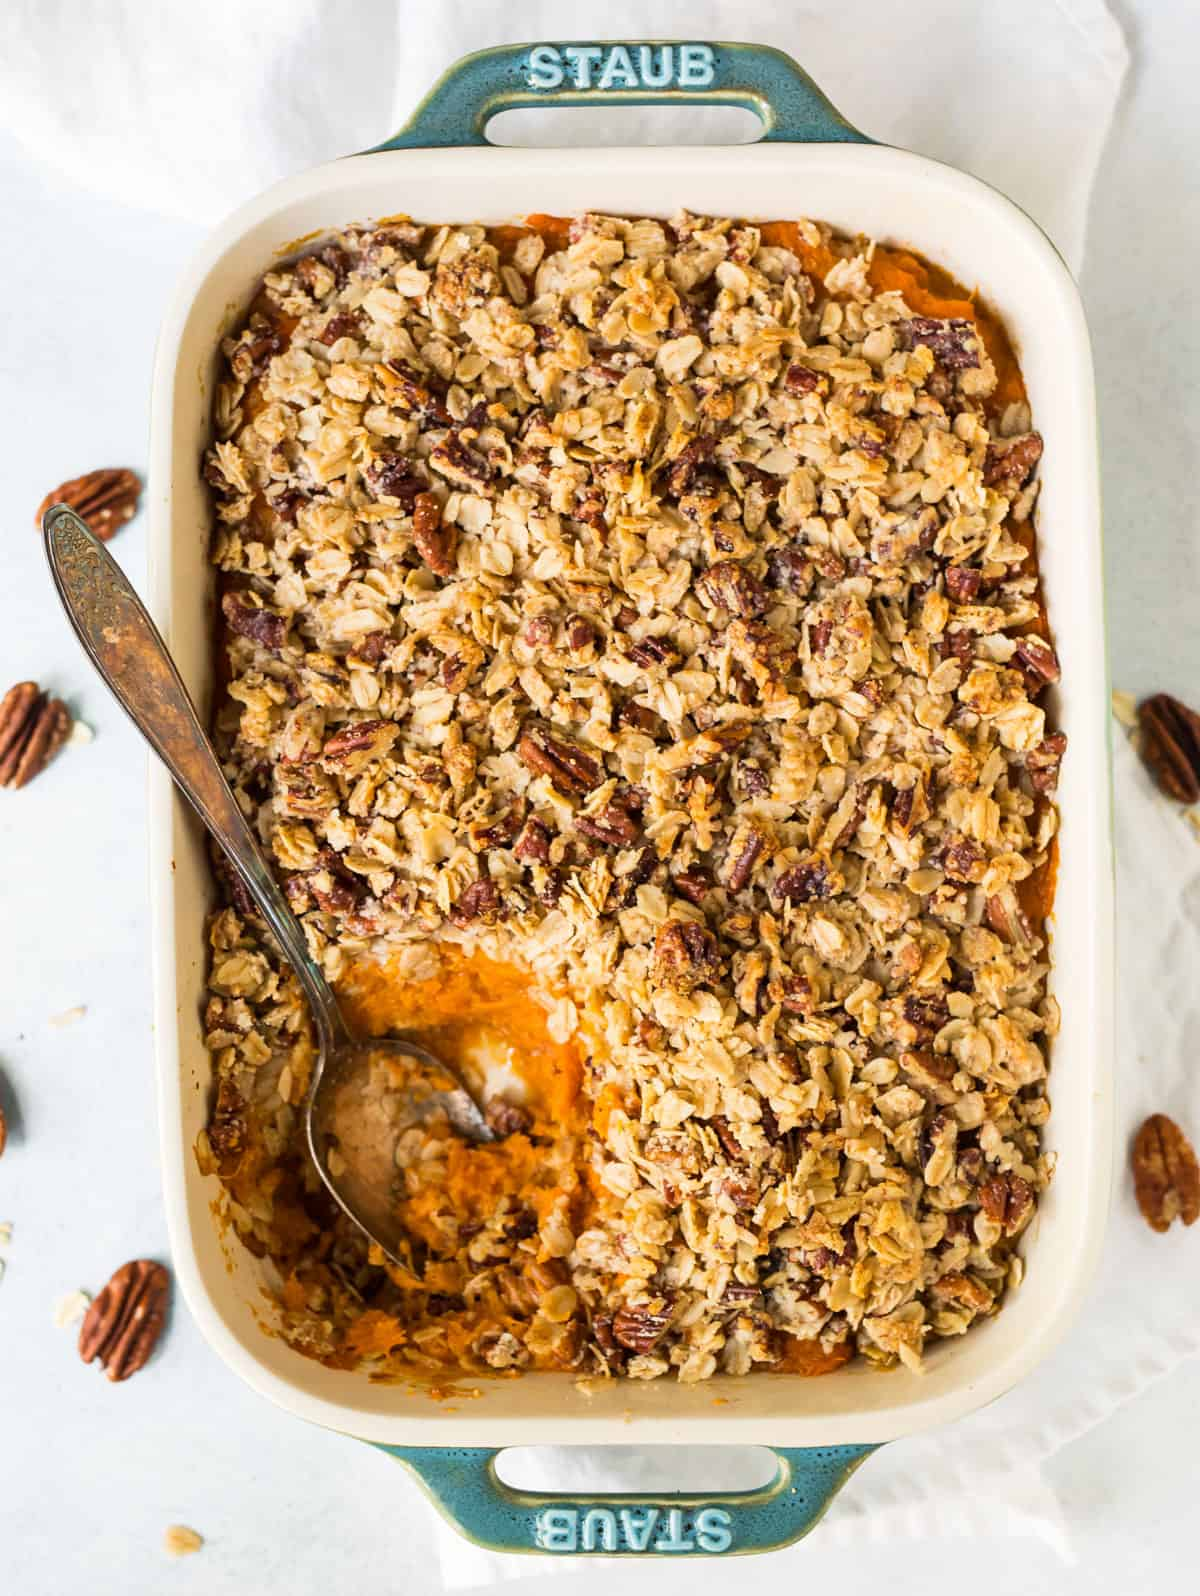 https://www.surgicalgroupnt.com/wp-content/uploads/2018/11/Healthy-Sweet-Potato-Casserole-Recipe-600x798@2x.jpg